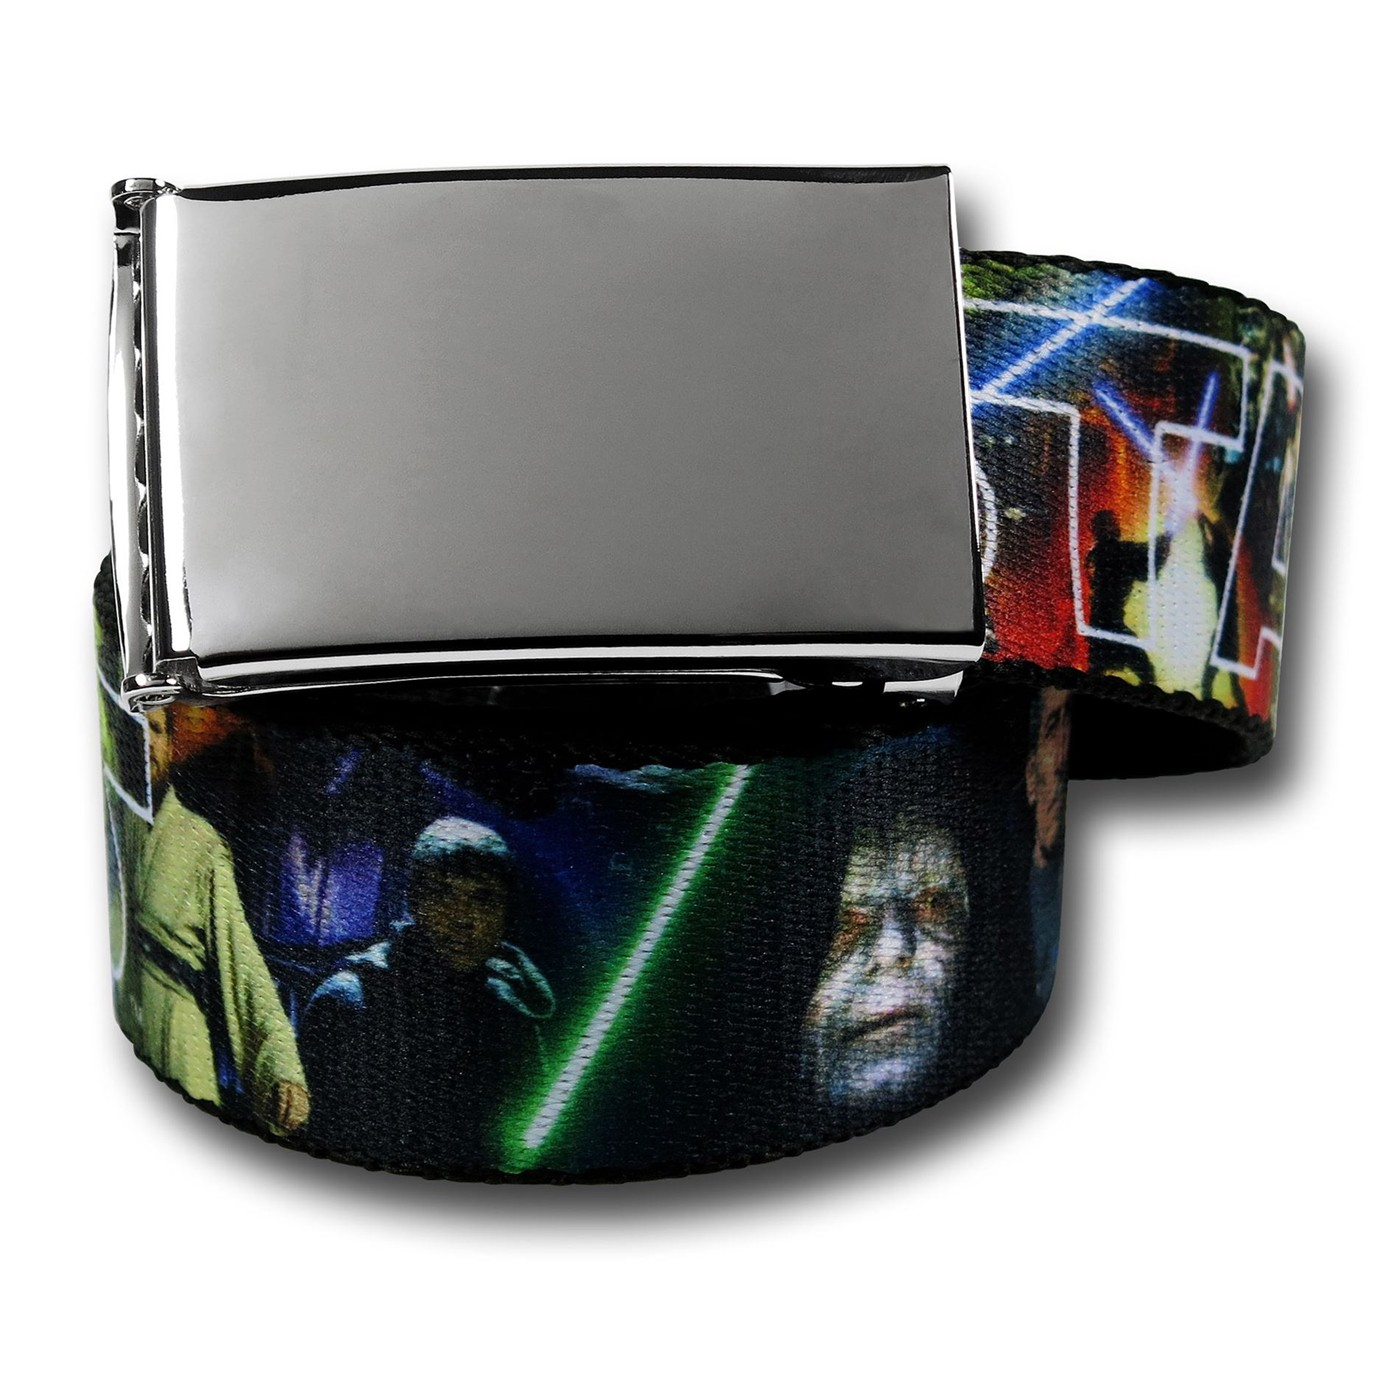 Star Wars Movie Scenes Web Belt